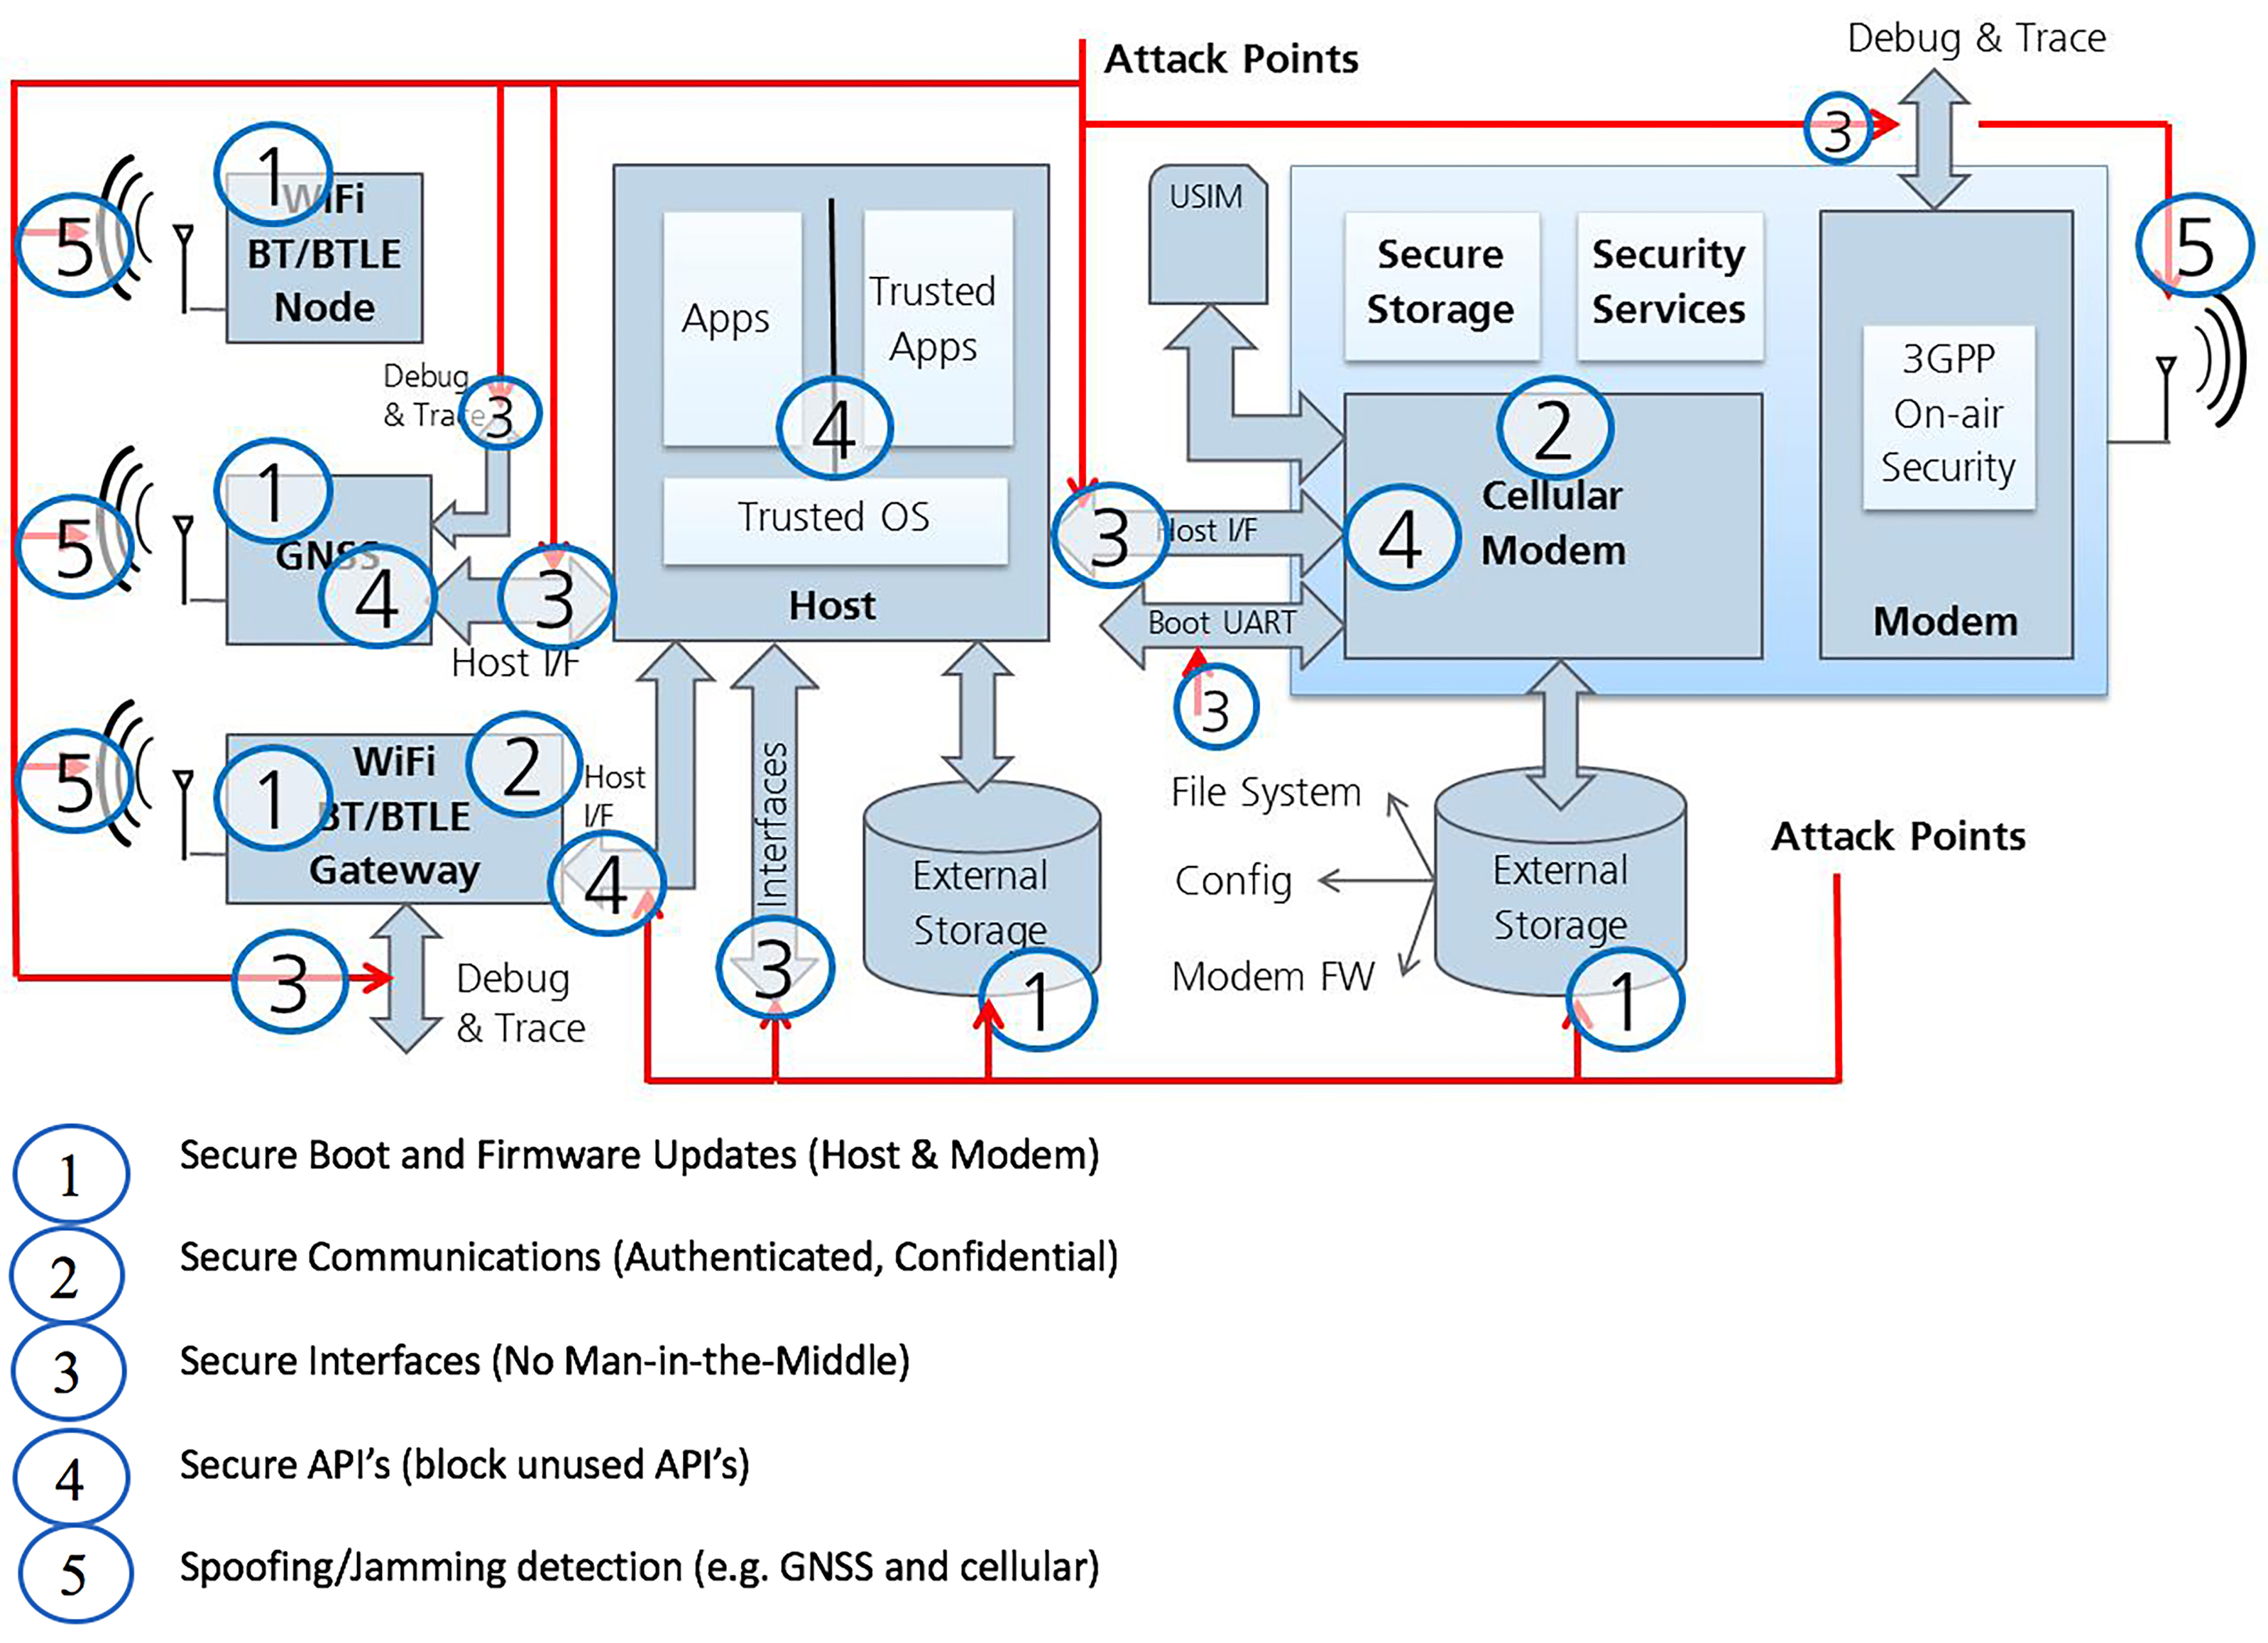 Figure 1. As the number of nodes on a network expands, so too do the attack surfaces, so all must be secured in order to establish a chain of trust, strengthened by five security pillars.